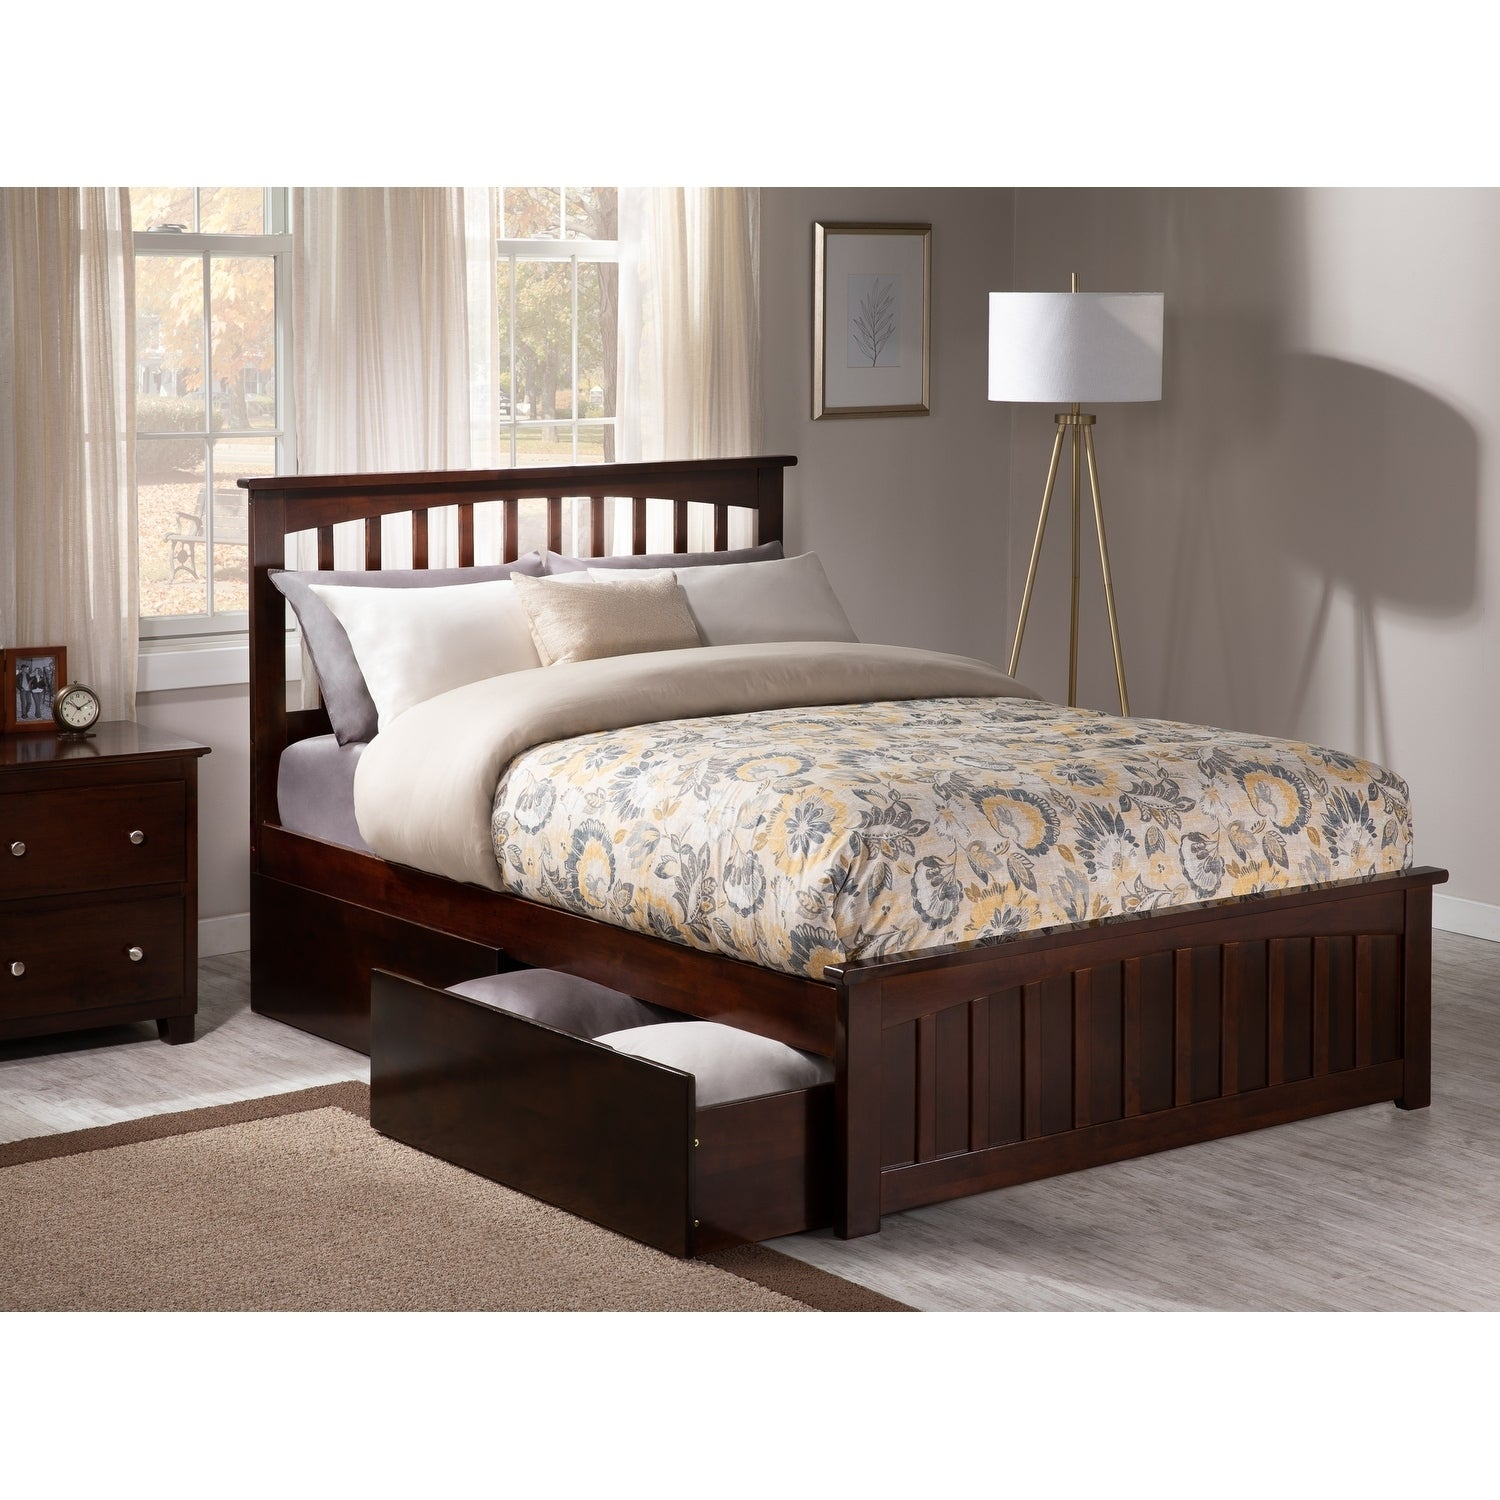 Atlantic Furniture Mission Full Bed with Matching Foot Bo...